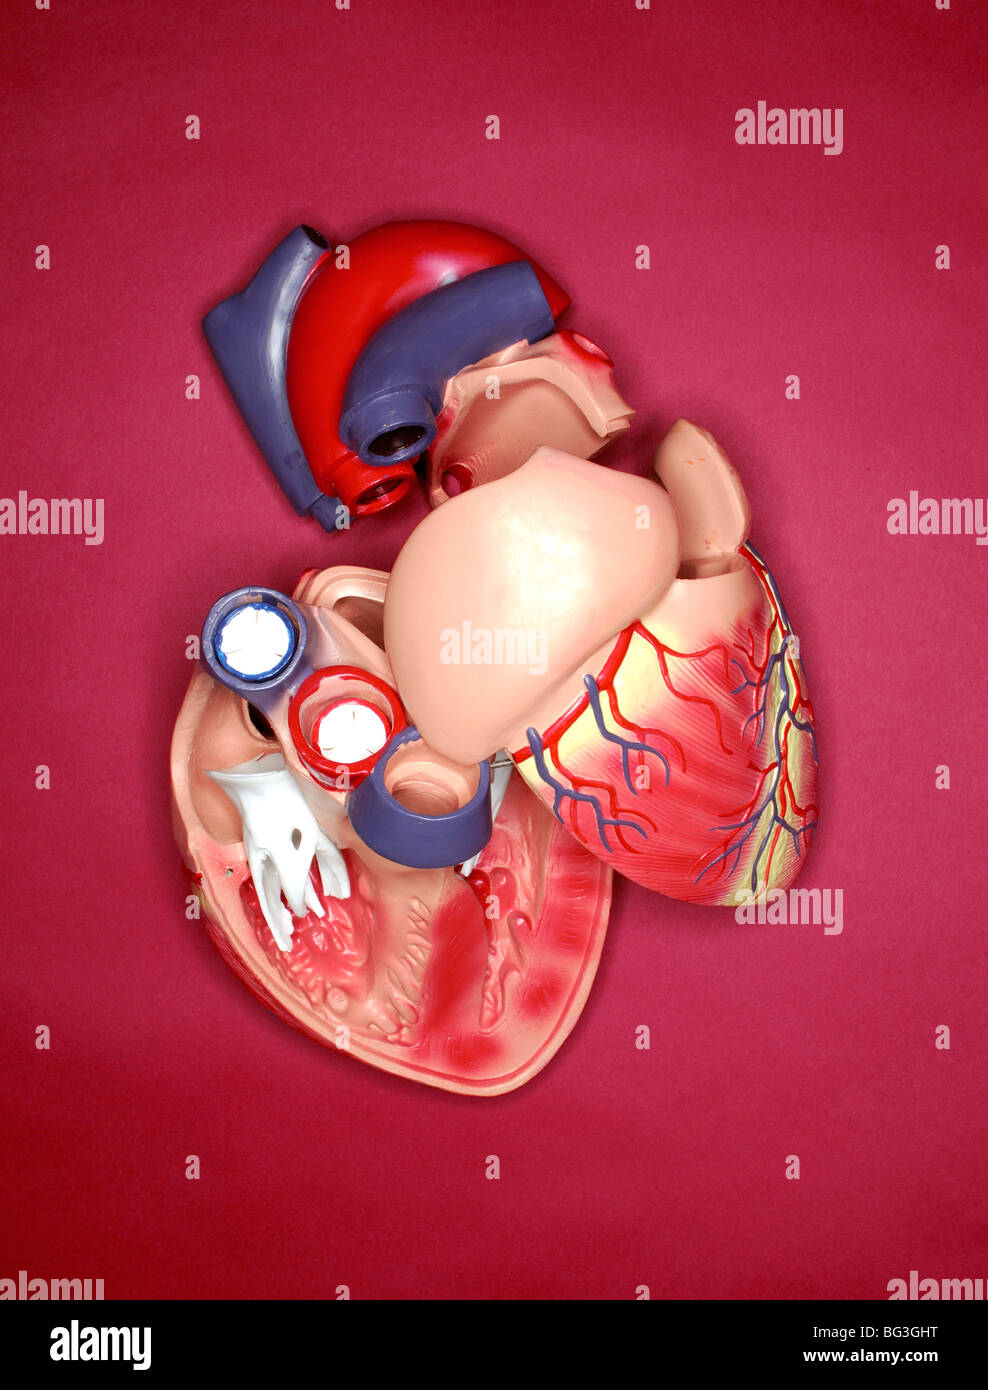 A plastic medical model of the human heart - Stock Image